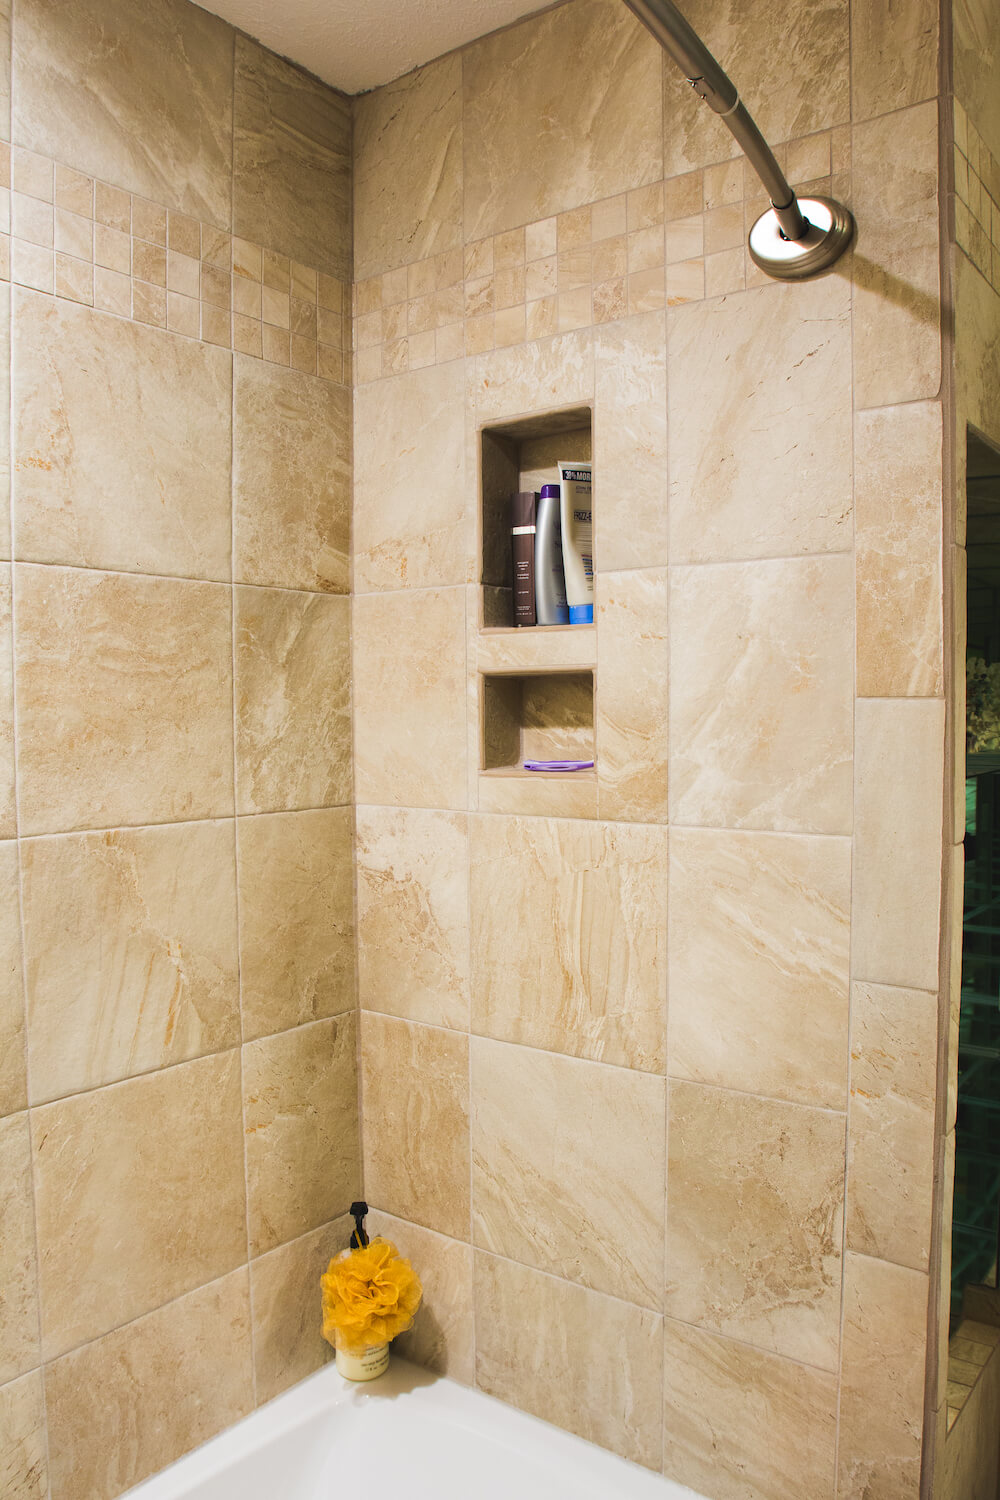 How to regrout tile shower floor gurus floor How to regrout bathroom tiles